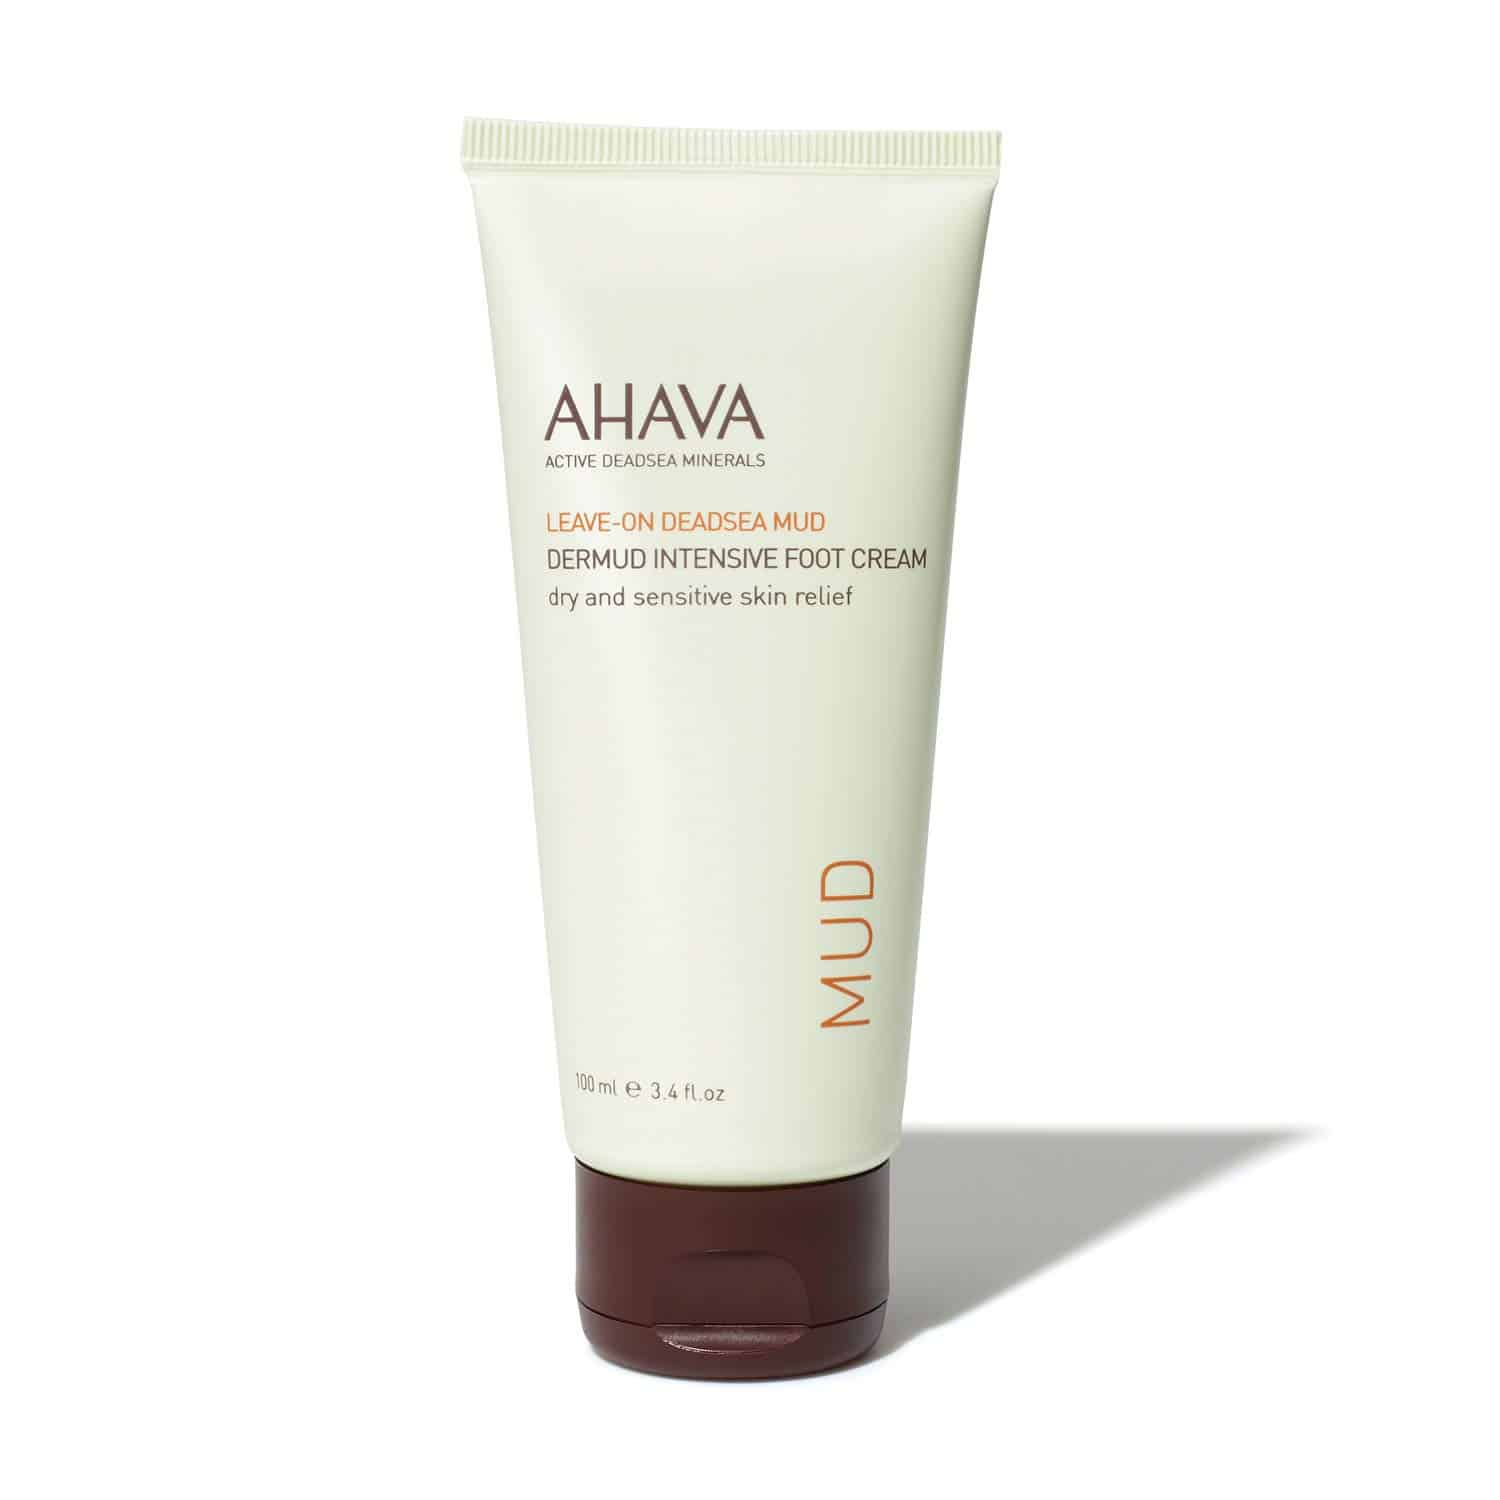 AHAVA Dermo Intensive Foot Cream